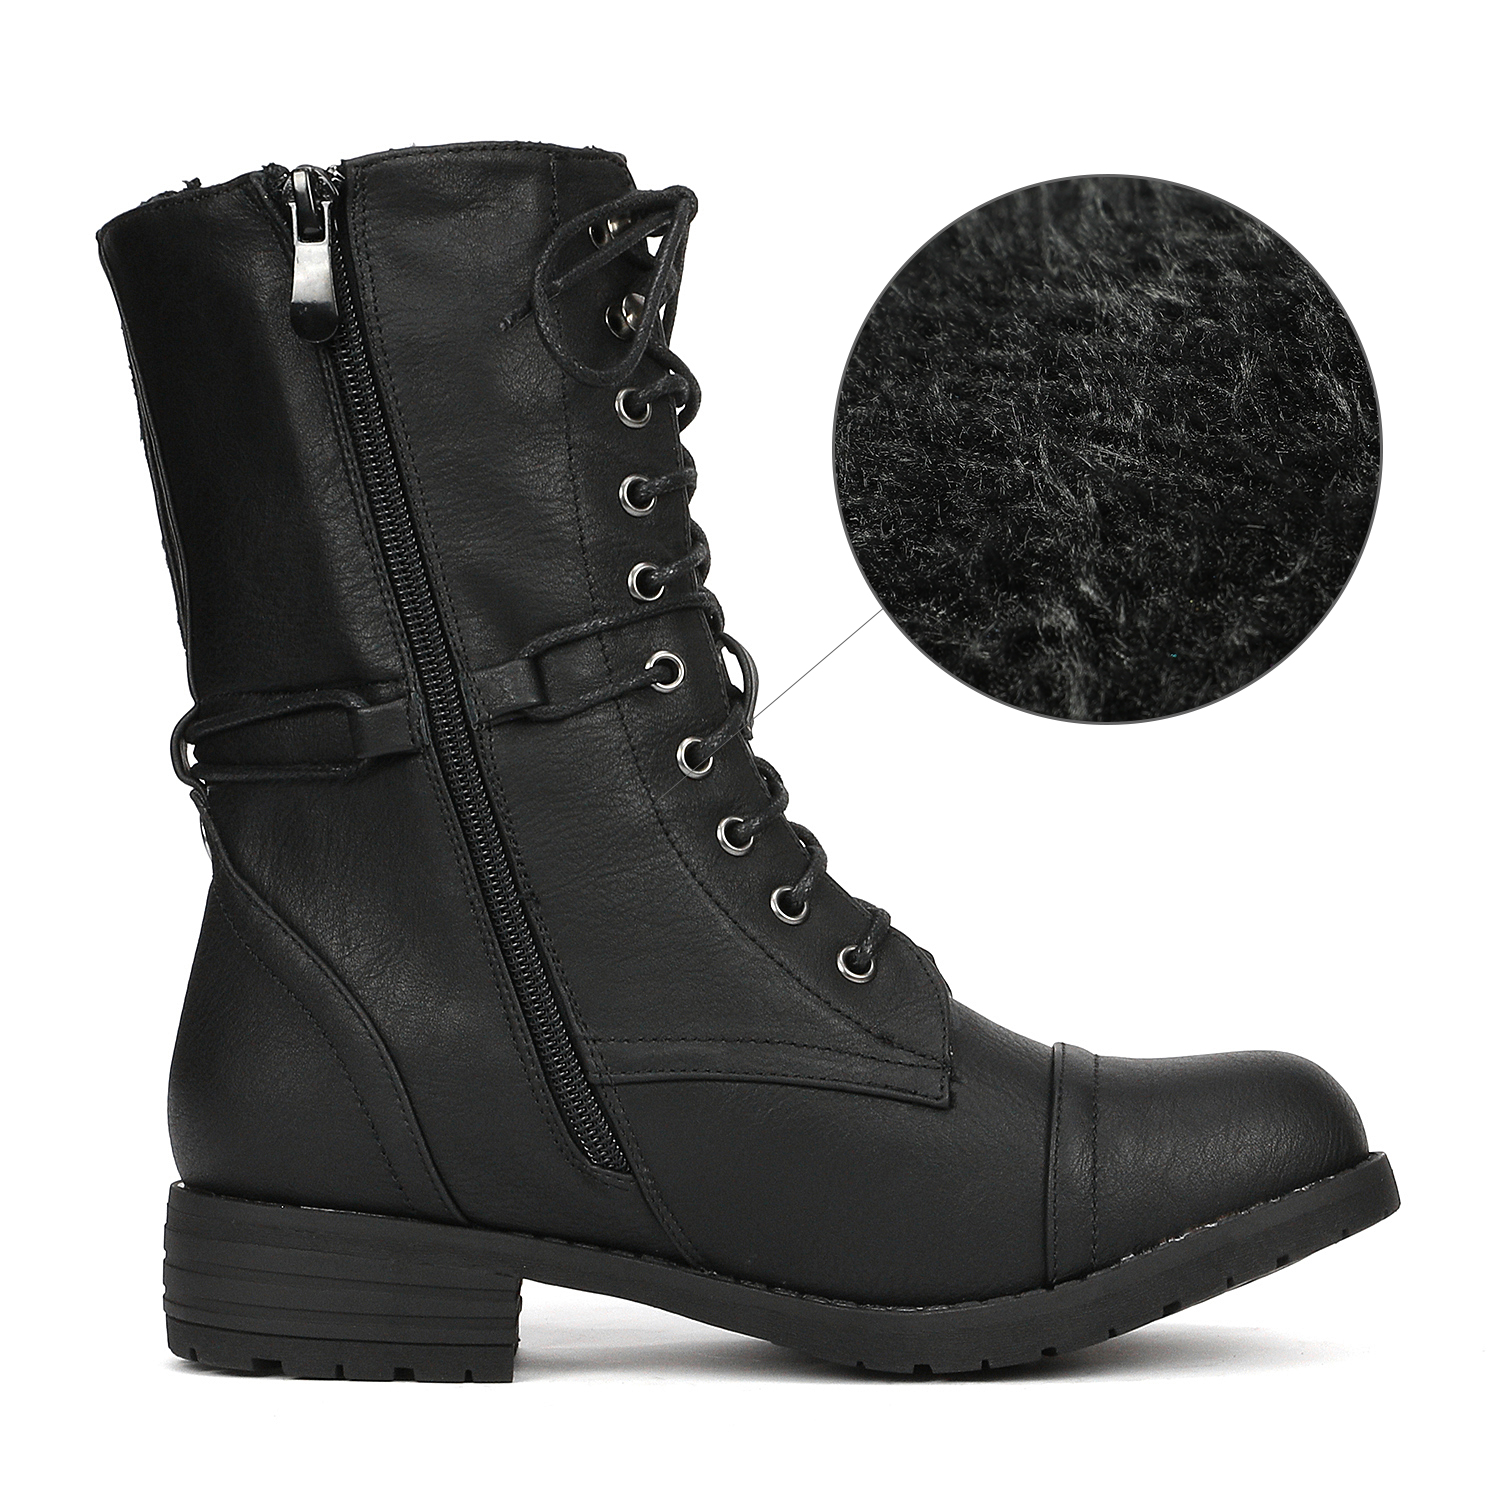 DREAM PAIRS Women Faux Fur Mid Calf Lace Up Combat Riding Motorcycle Boots